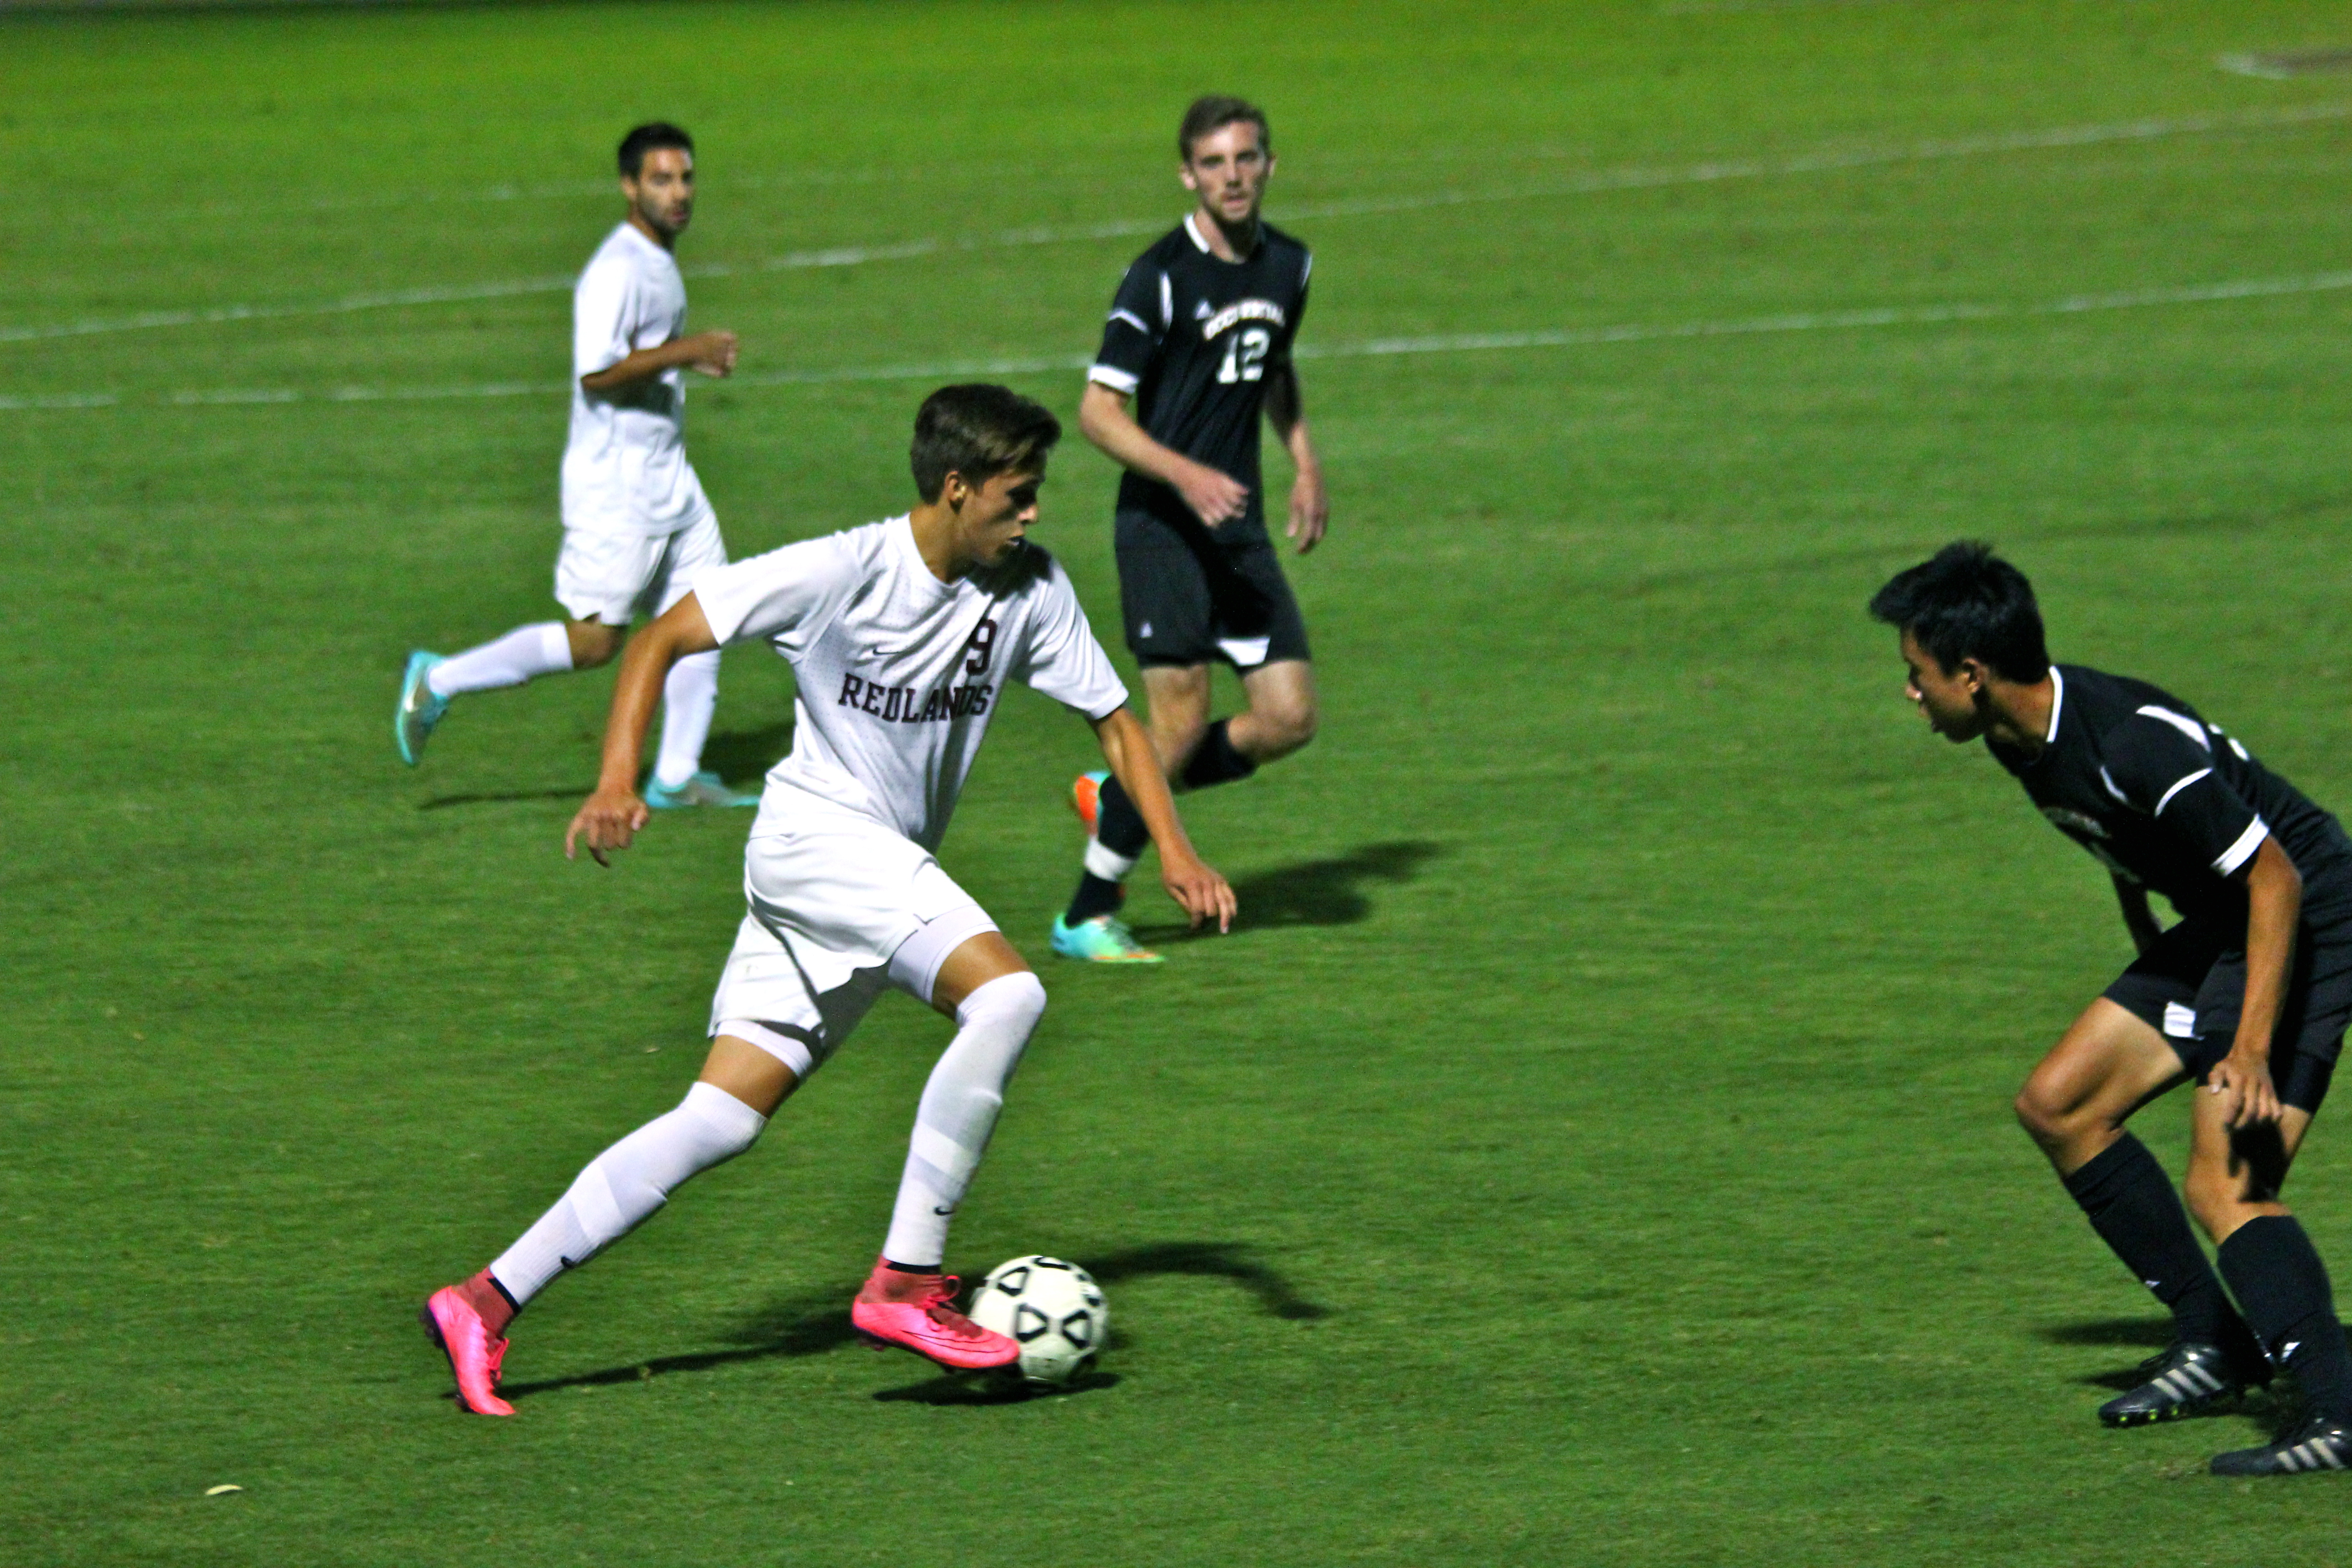 Men's Soccer Stays in First After Huge Win